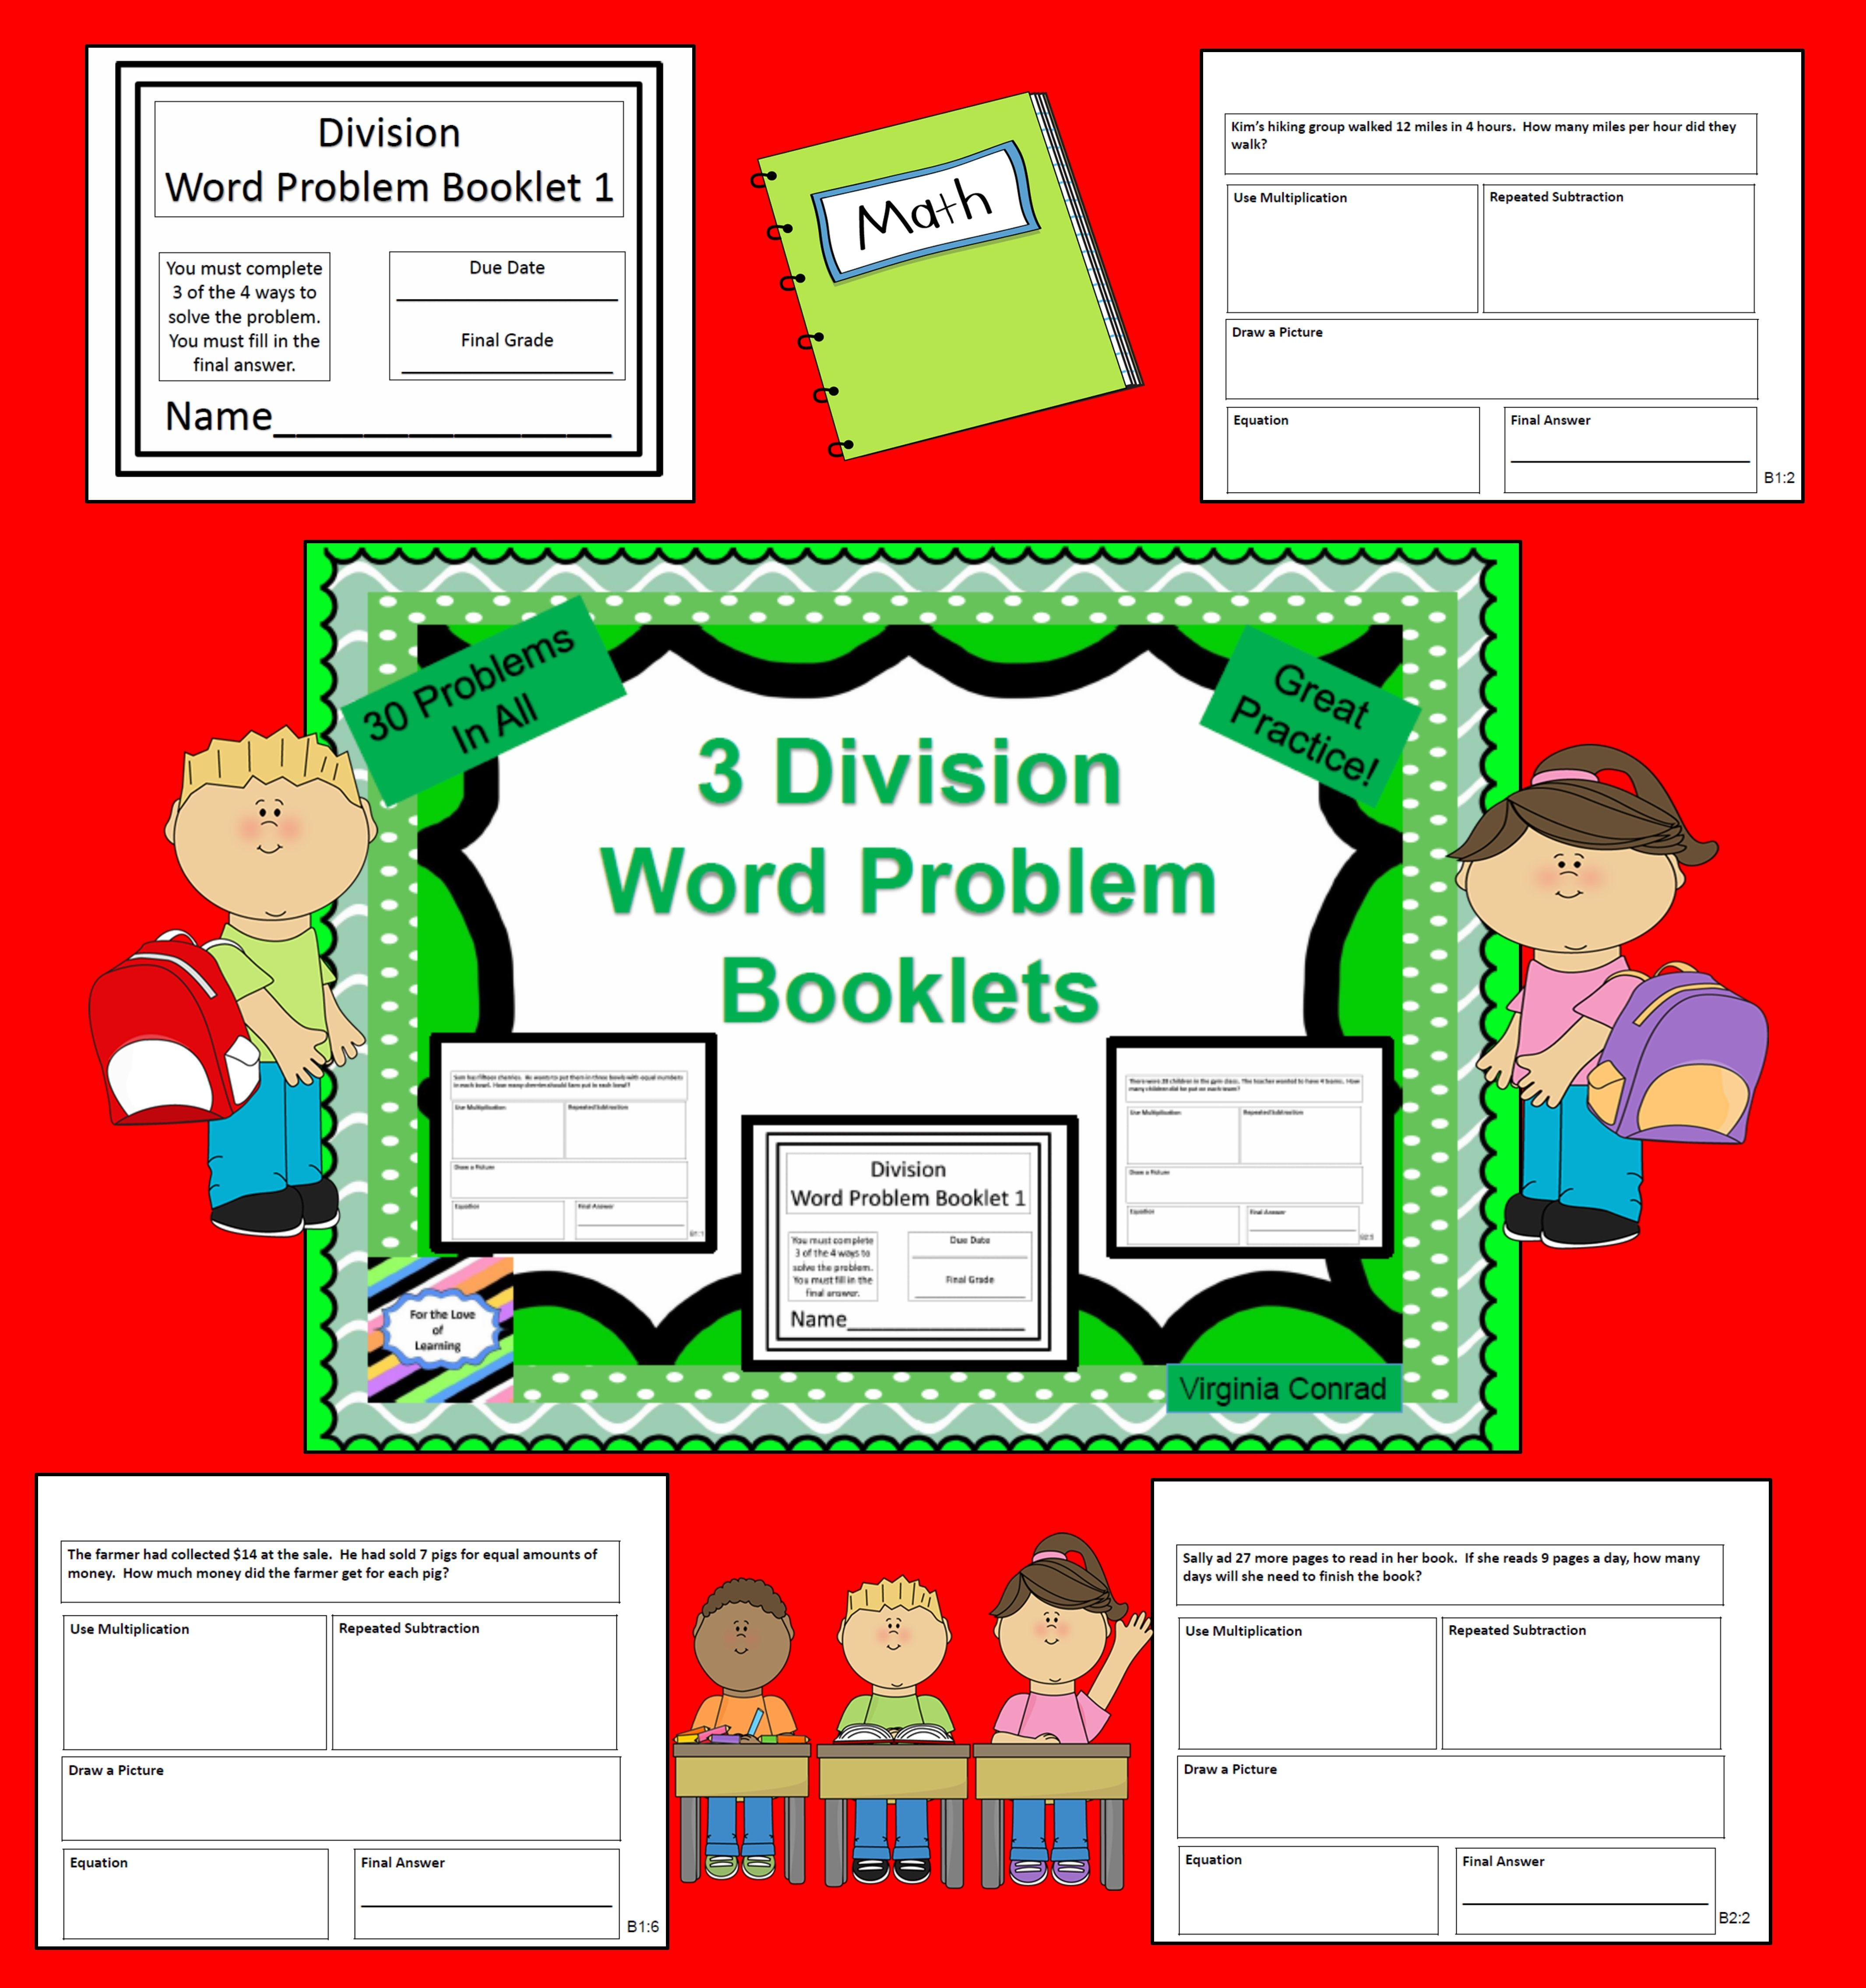 Basic Division Word Problem Booklets 10 Problems In Each